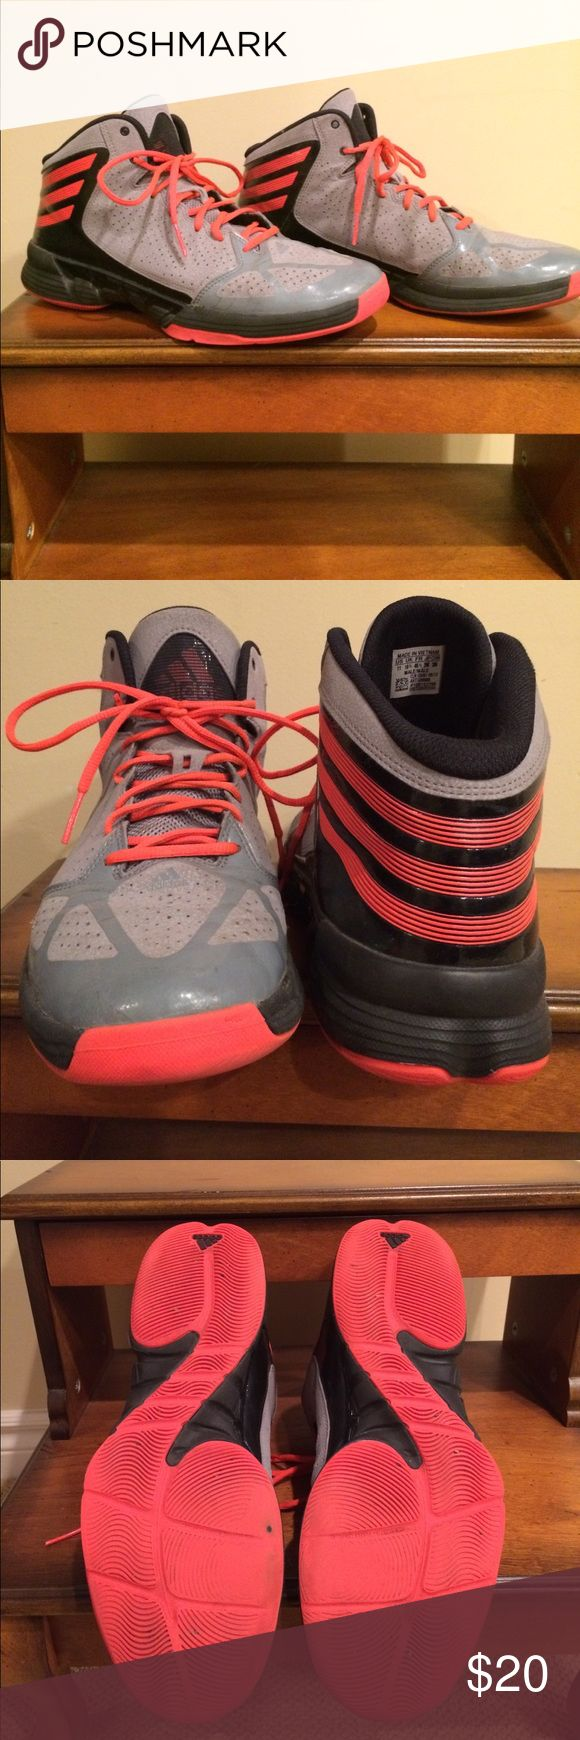 Men's Size 11 Adidas high top basketball shoes. Men's Size 11 Adidas high top basketball shoes. Still some life left in them and in good condition. Grey, black, and orange in color. Adidas Shoes Athletic Shoes